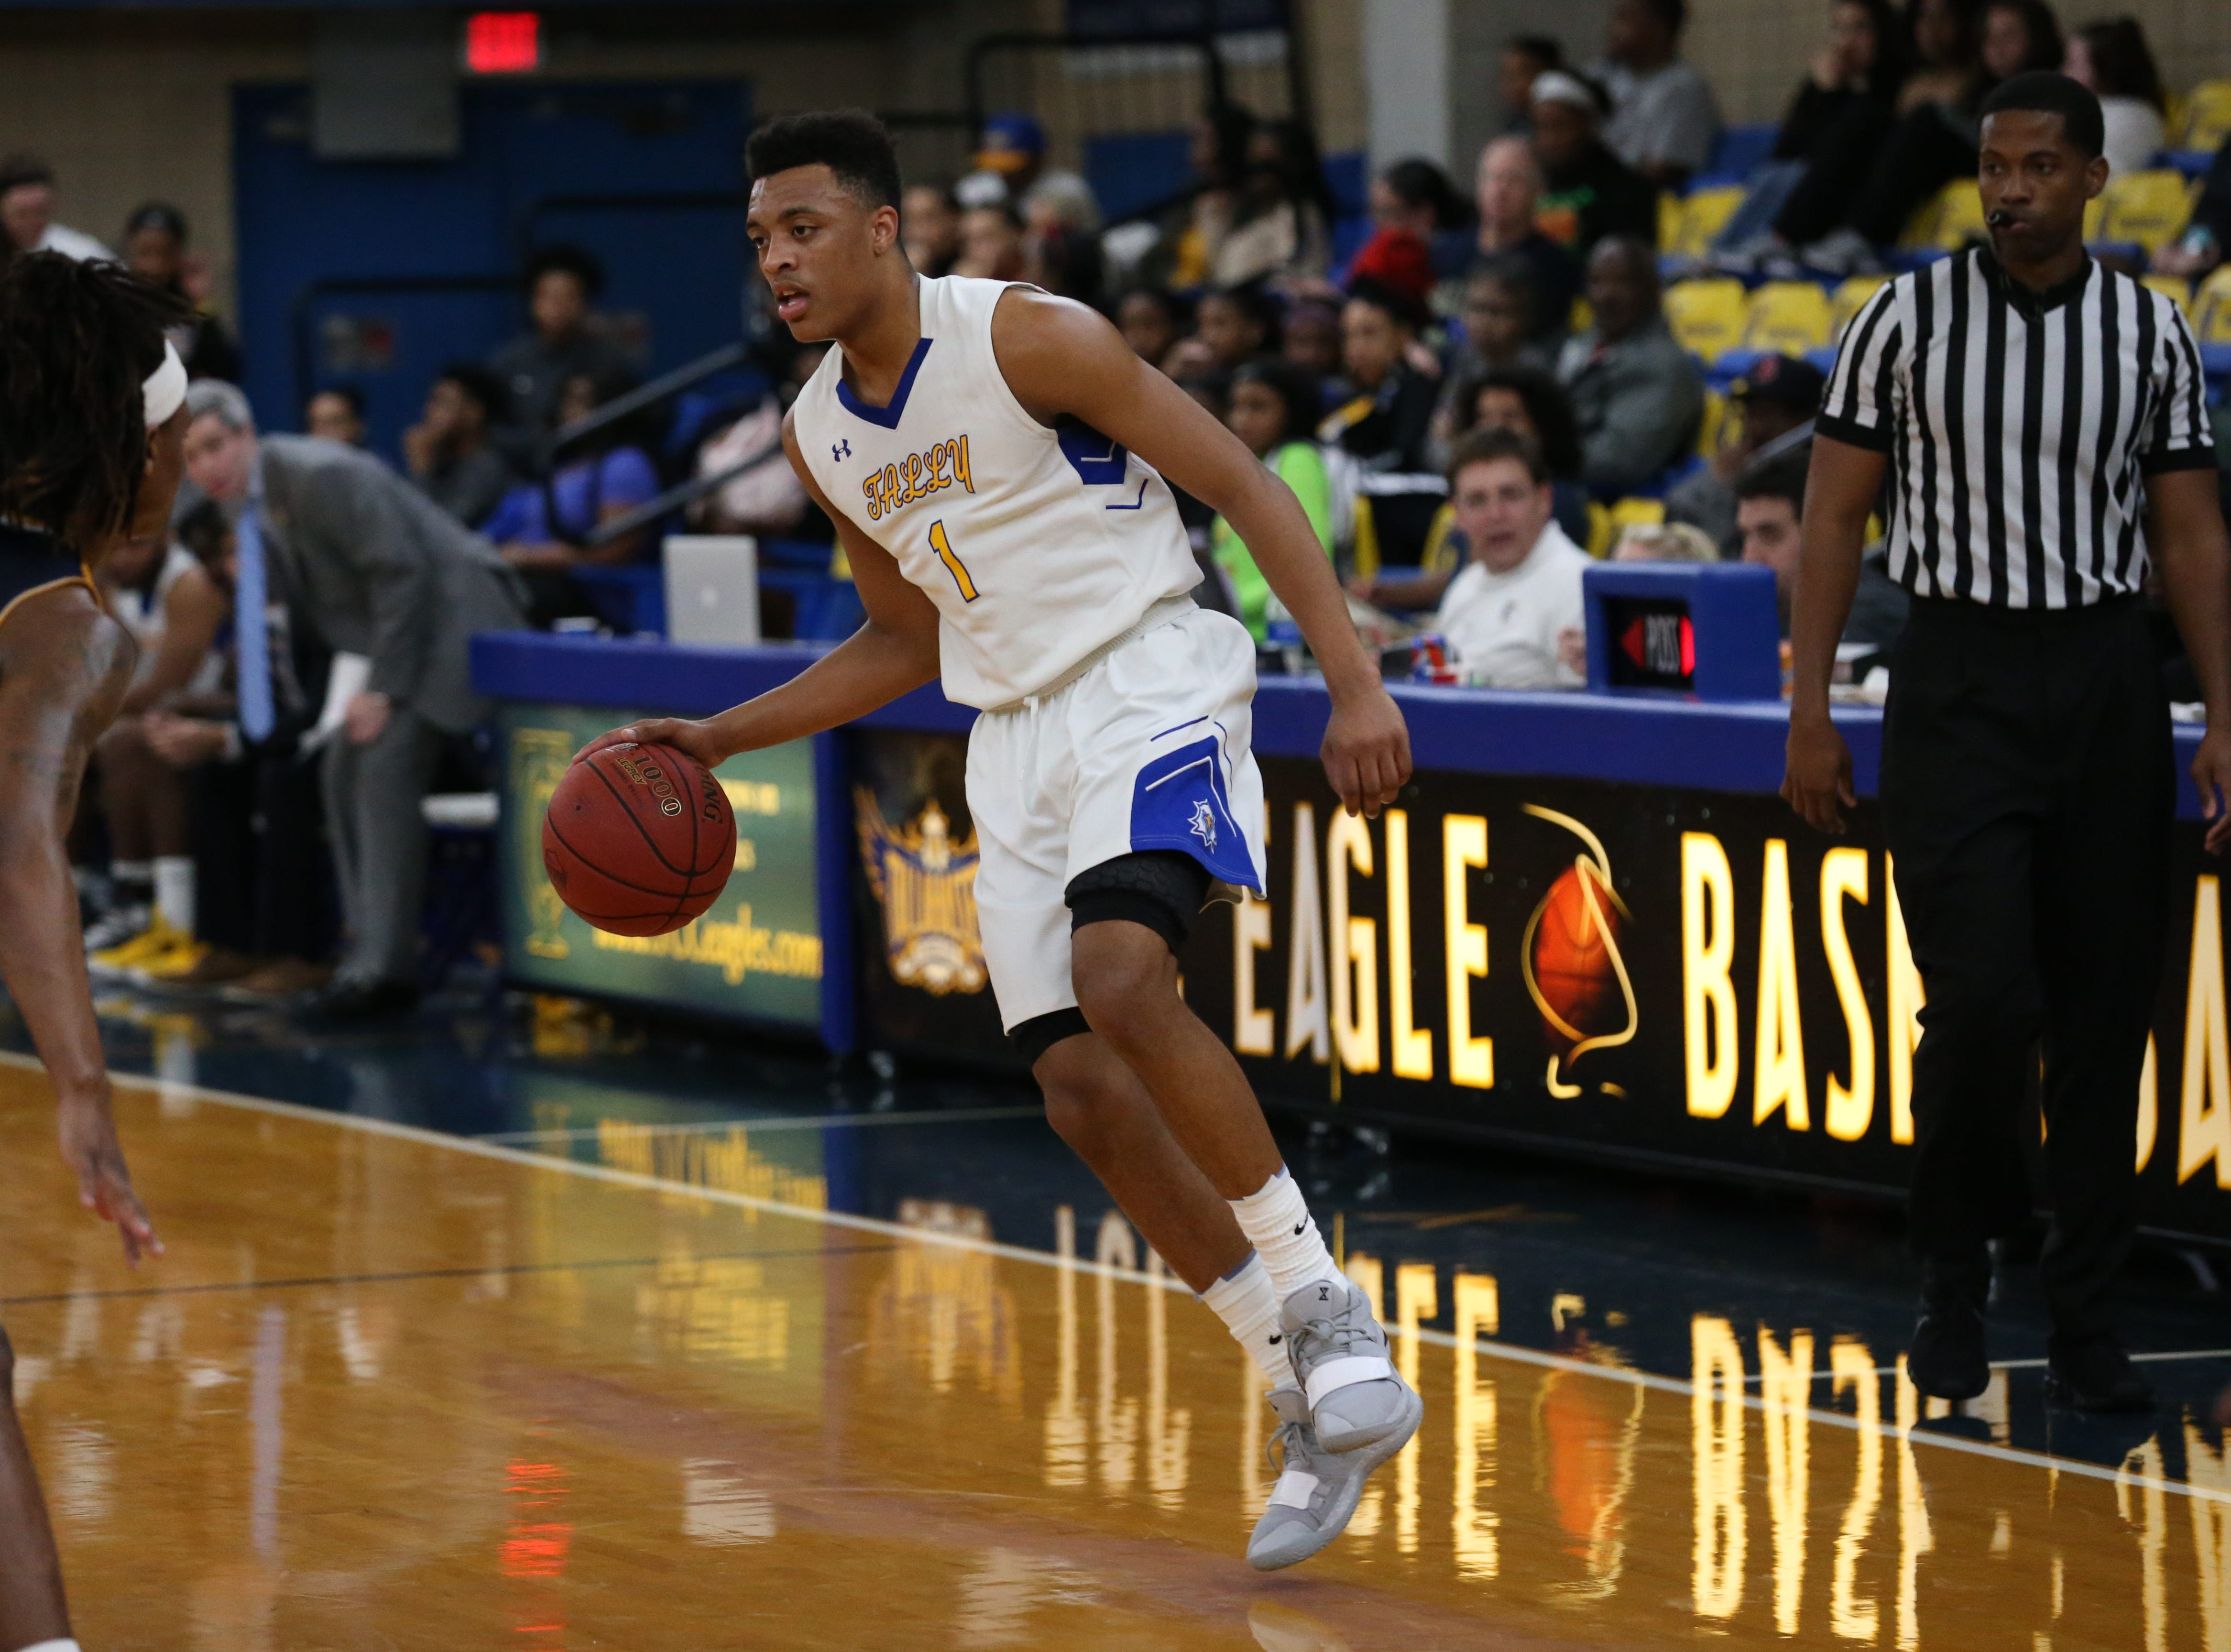 Tallahassee Community College guard Eric Boone looks to get around a defender from Gulf Coast State College.